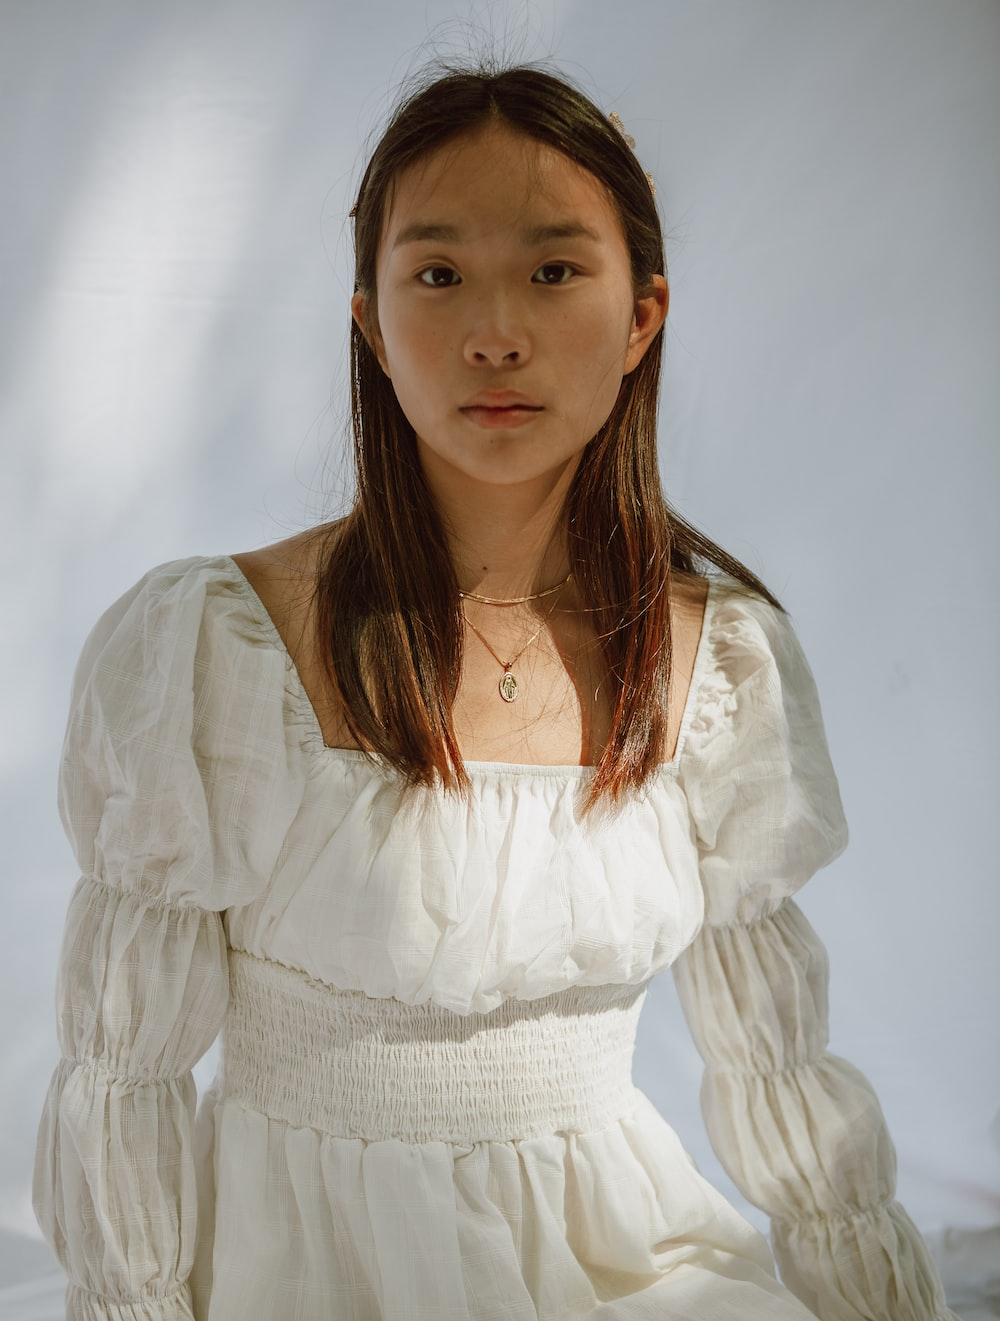 girl in white dress wearing silver necklace